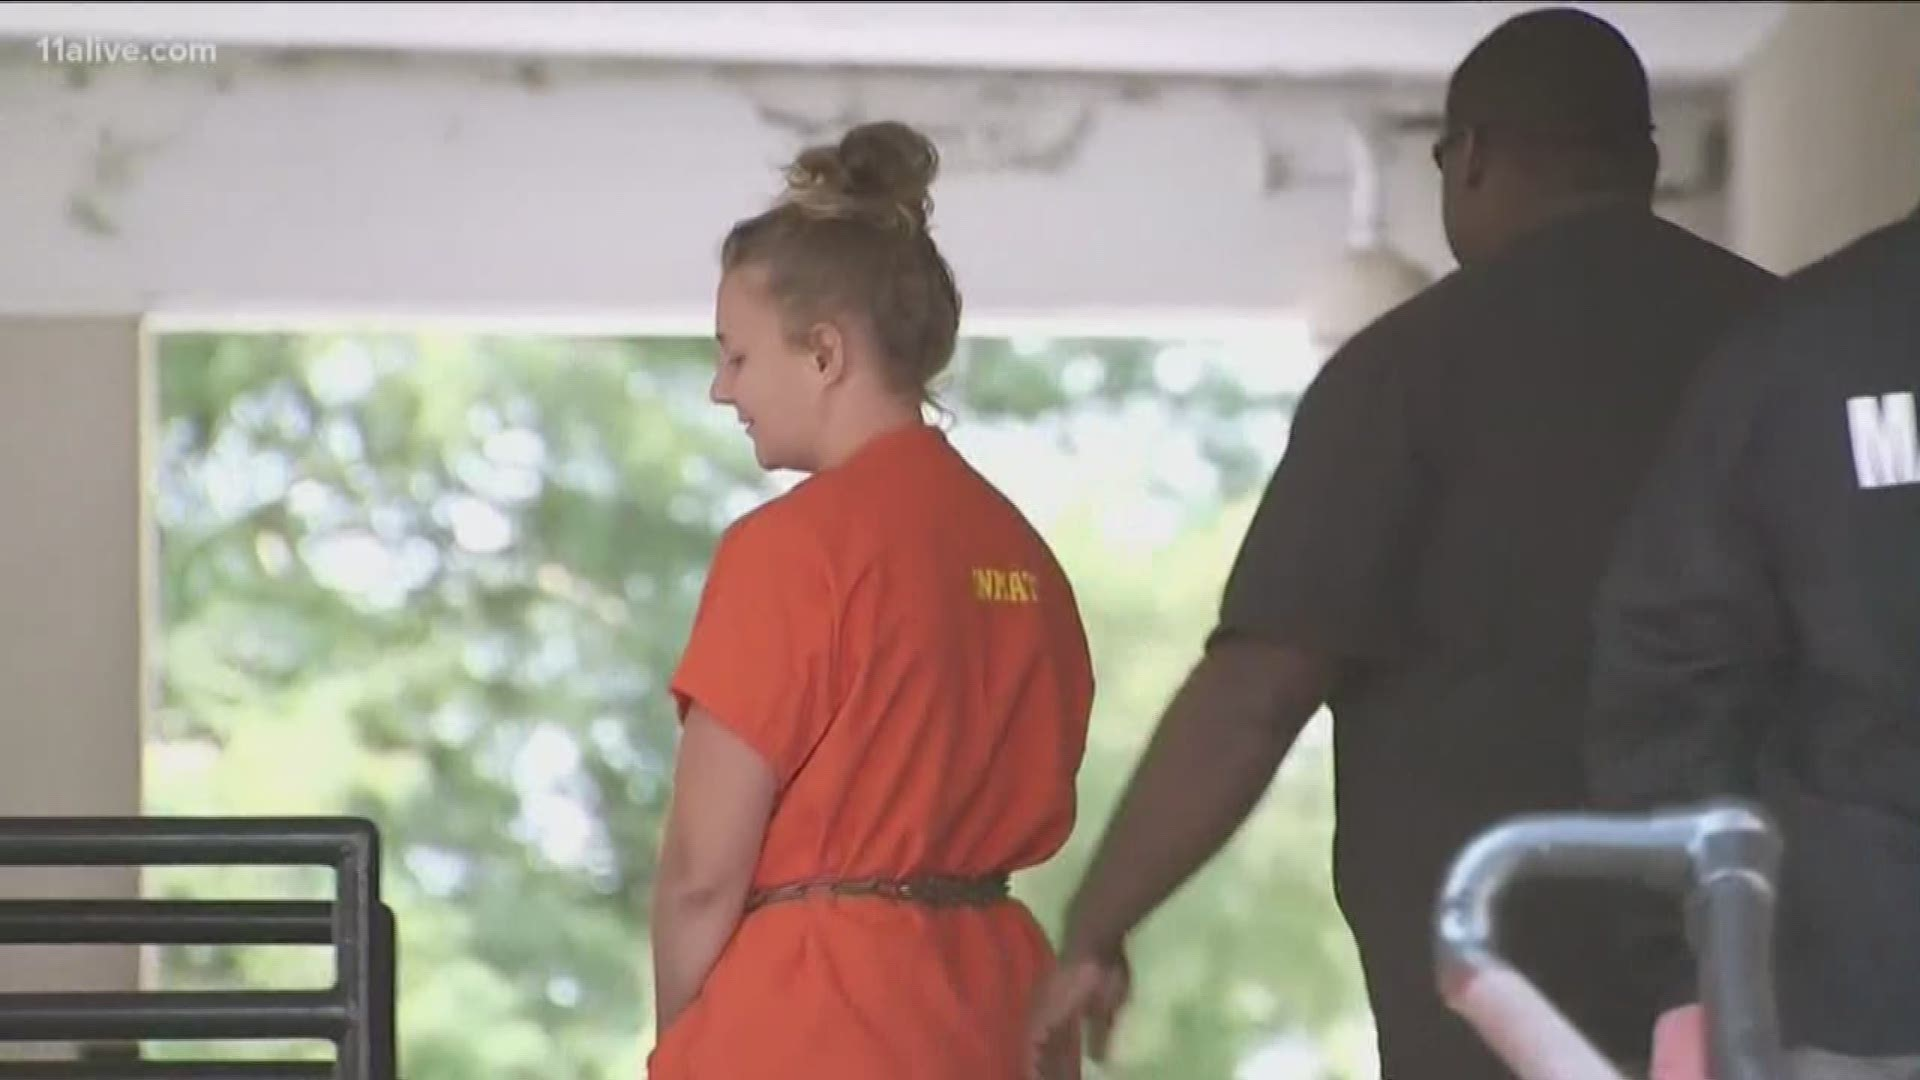 Reality Winner Nsa Contractor In Leak Case Out Of Prison 11alive Com